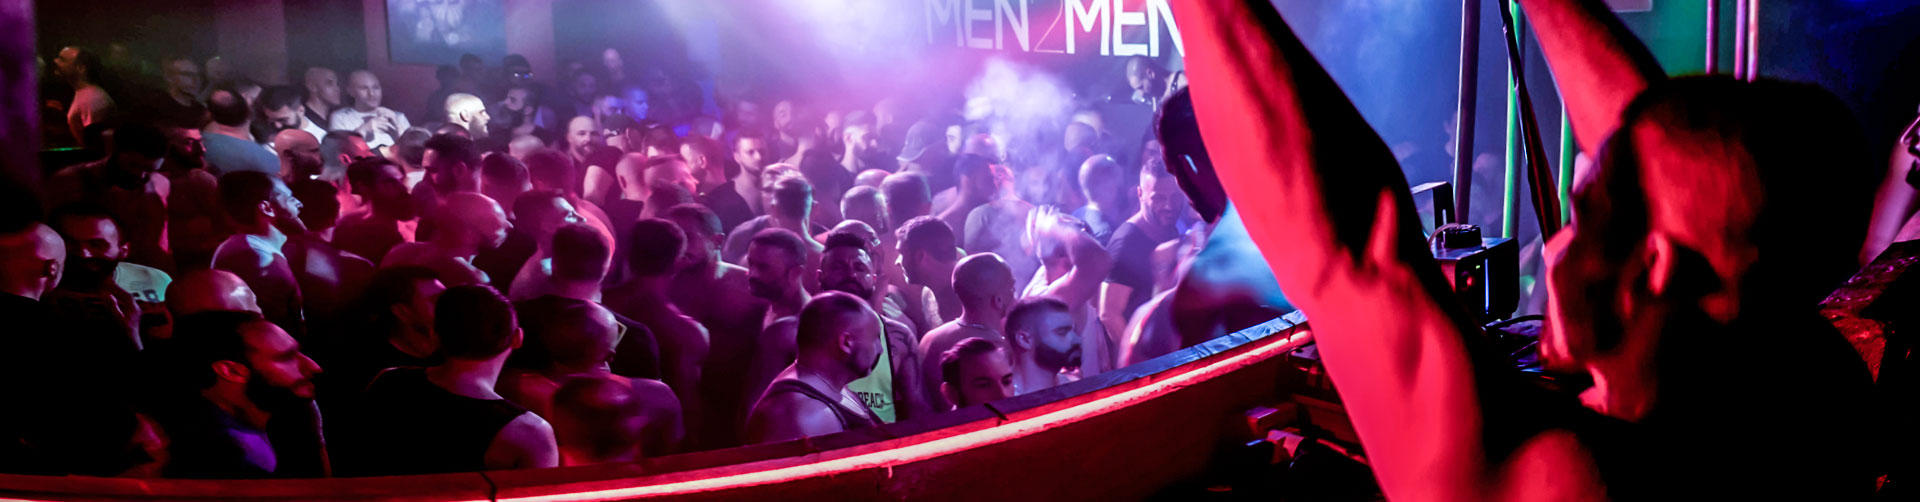 Deejay | MEN2MEN